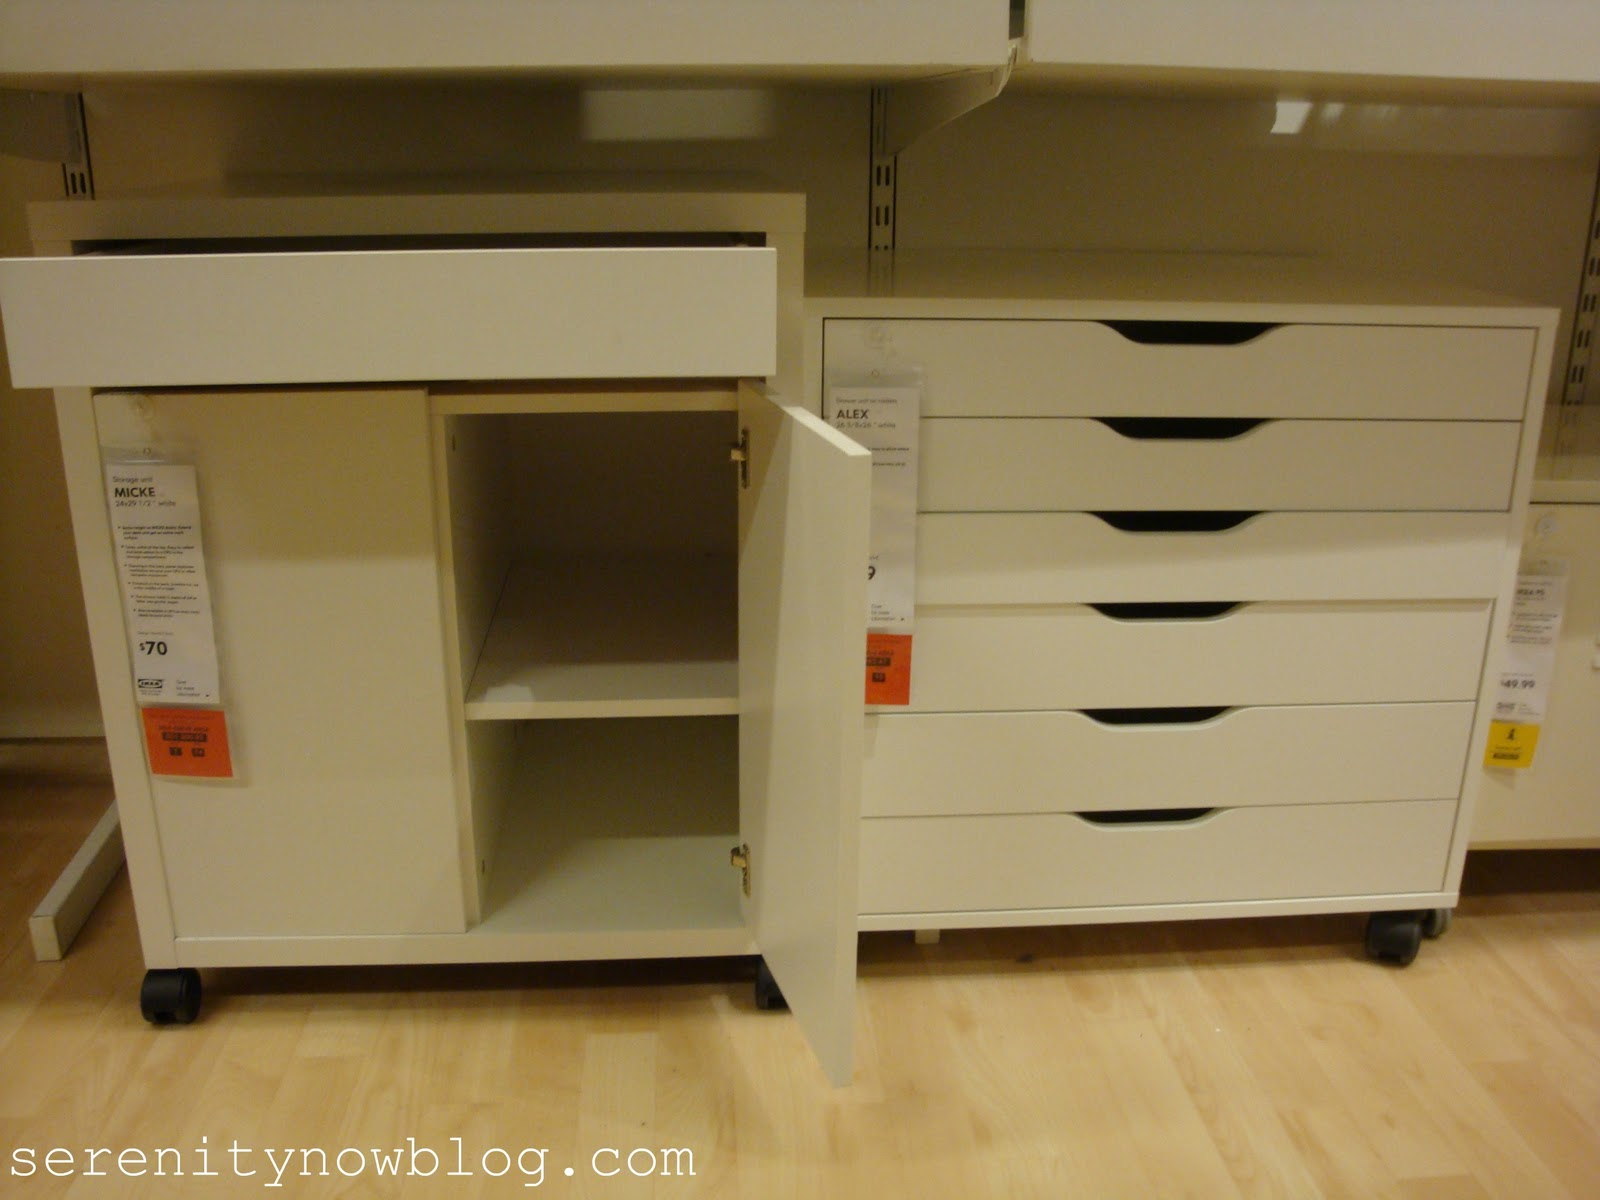 lots of nice little carts and drawer units to fit underneath your